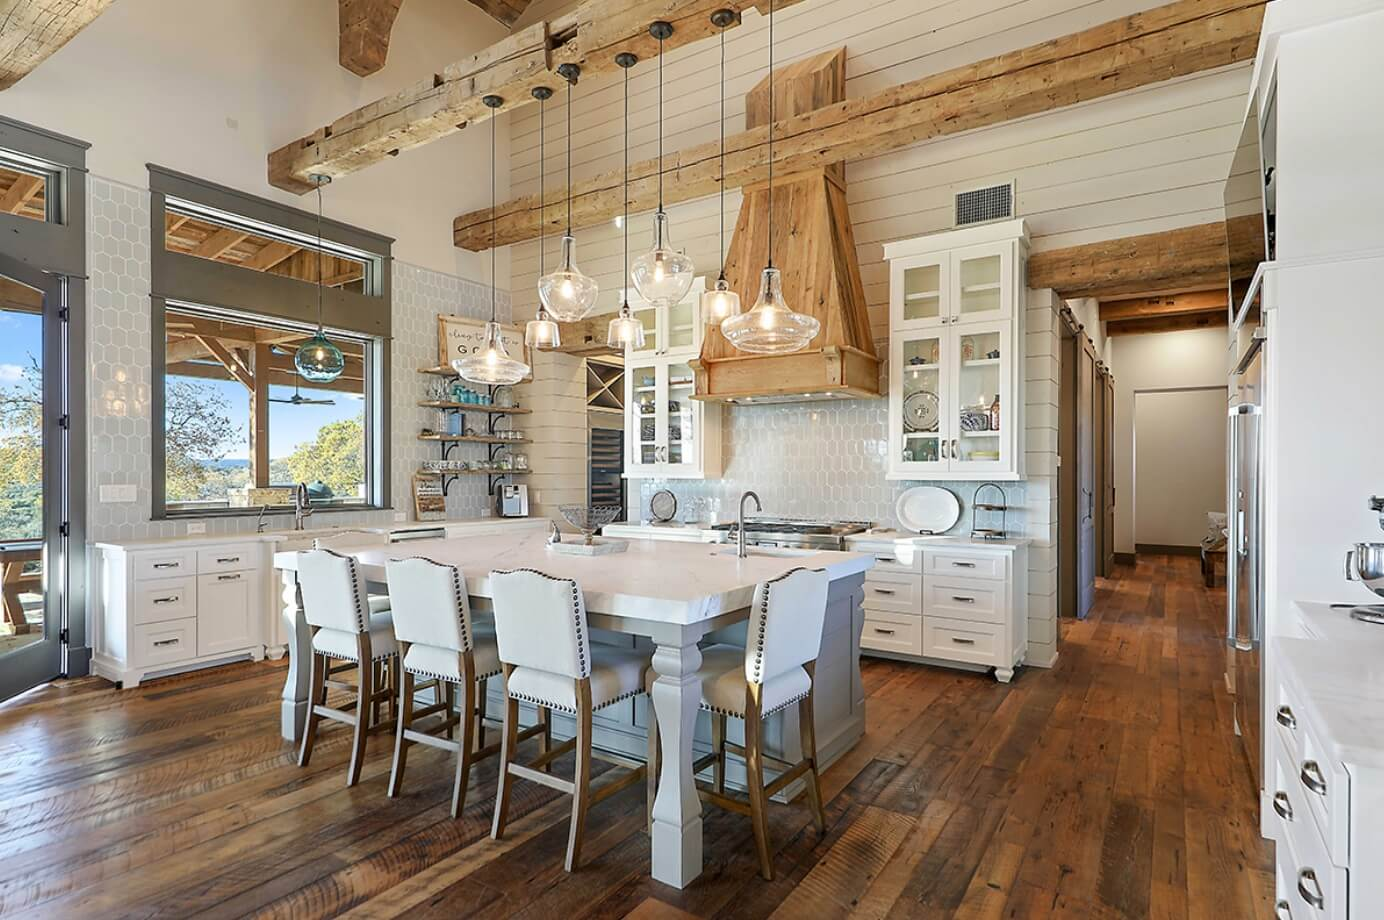 Modern farmhouse kitchen color ideas freshome - Farmhouse style kitchen cabinets ...